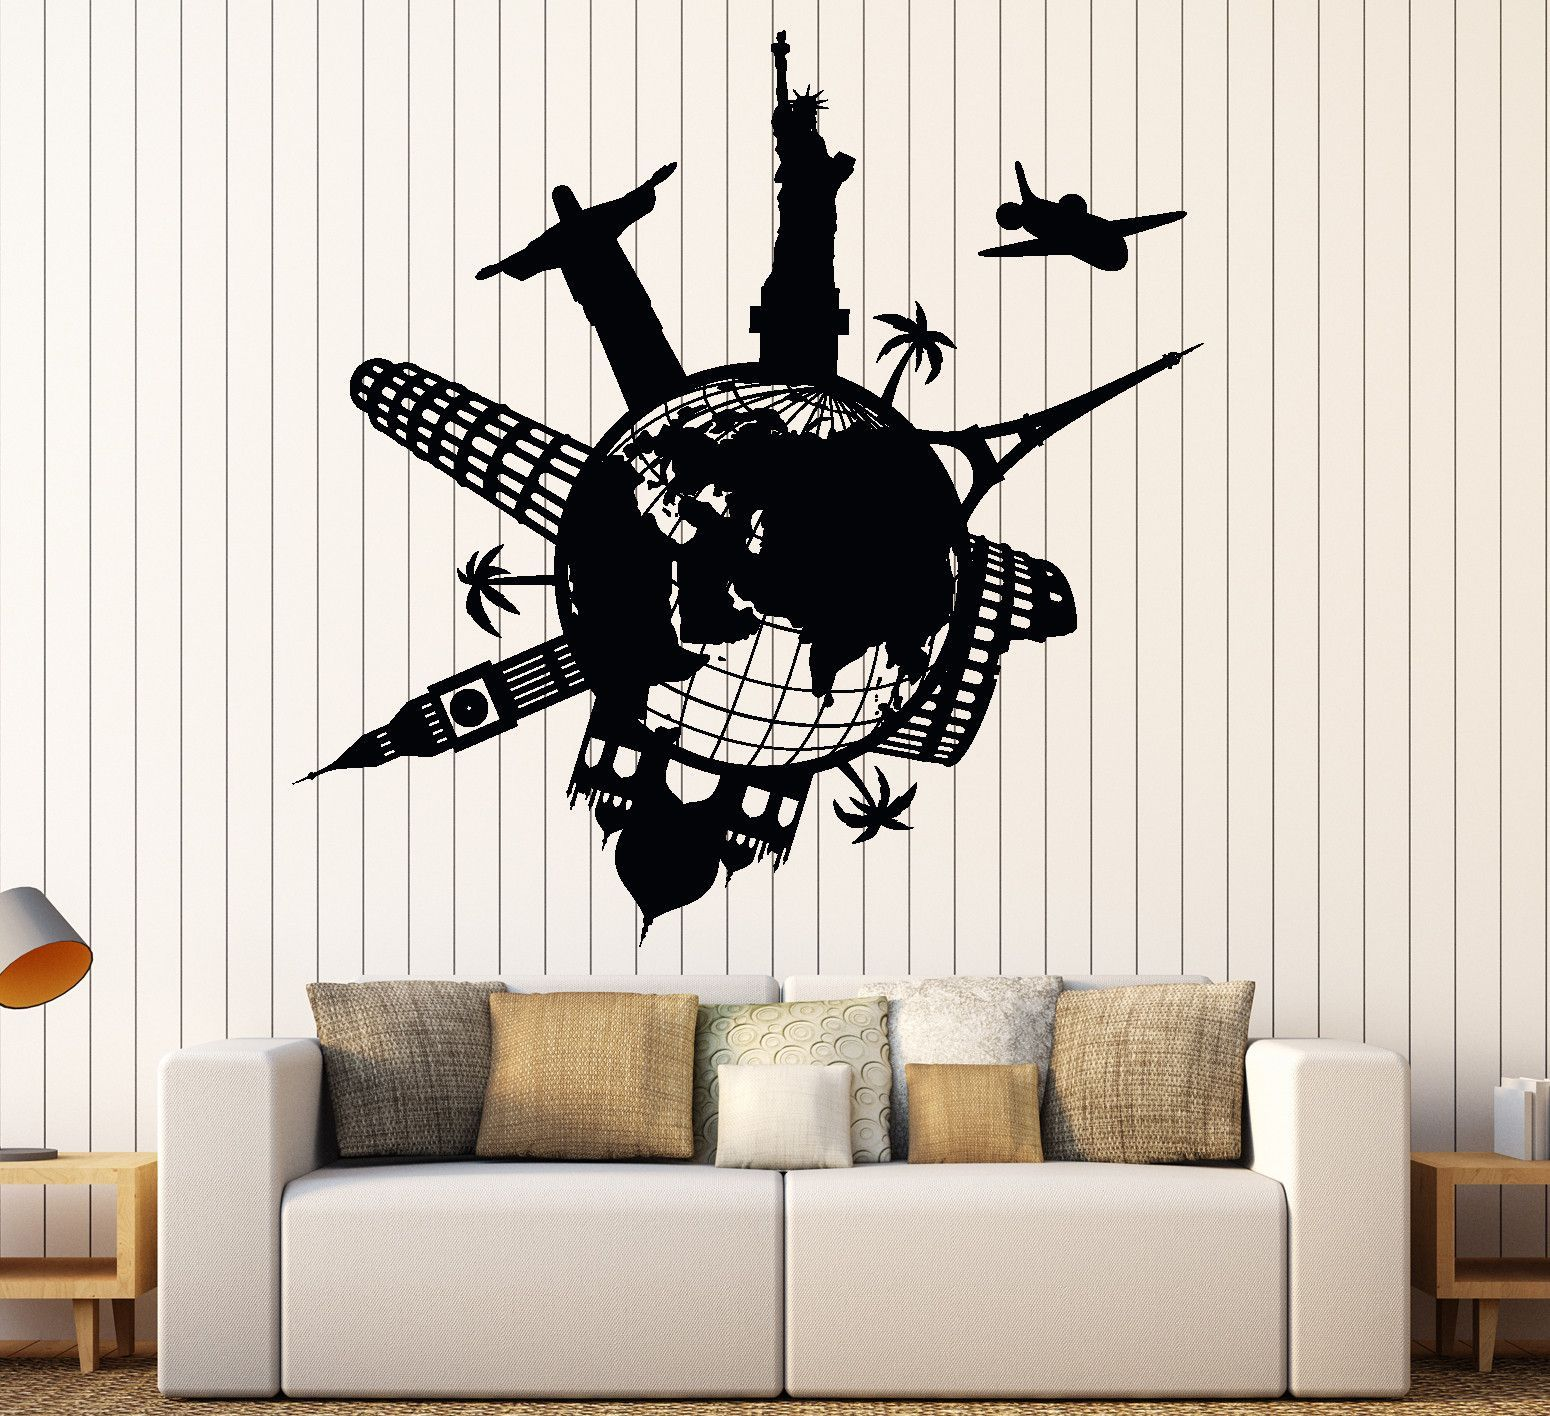 Wall Vinyl Decal Satue Of Liberty Eiffel Tower Famous Places